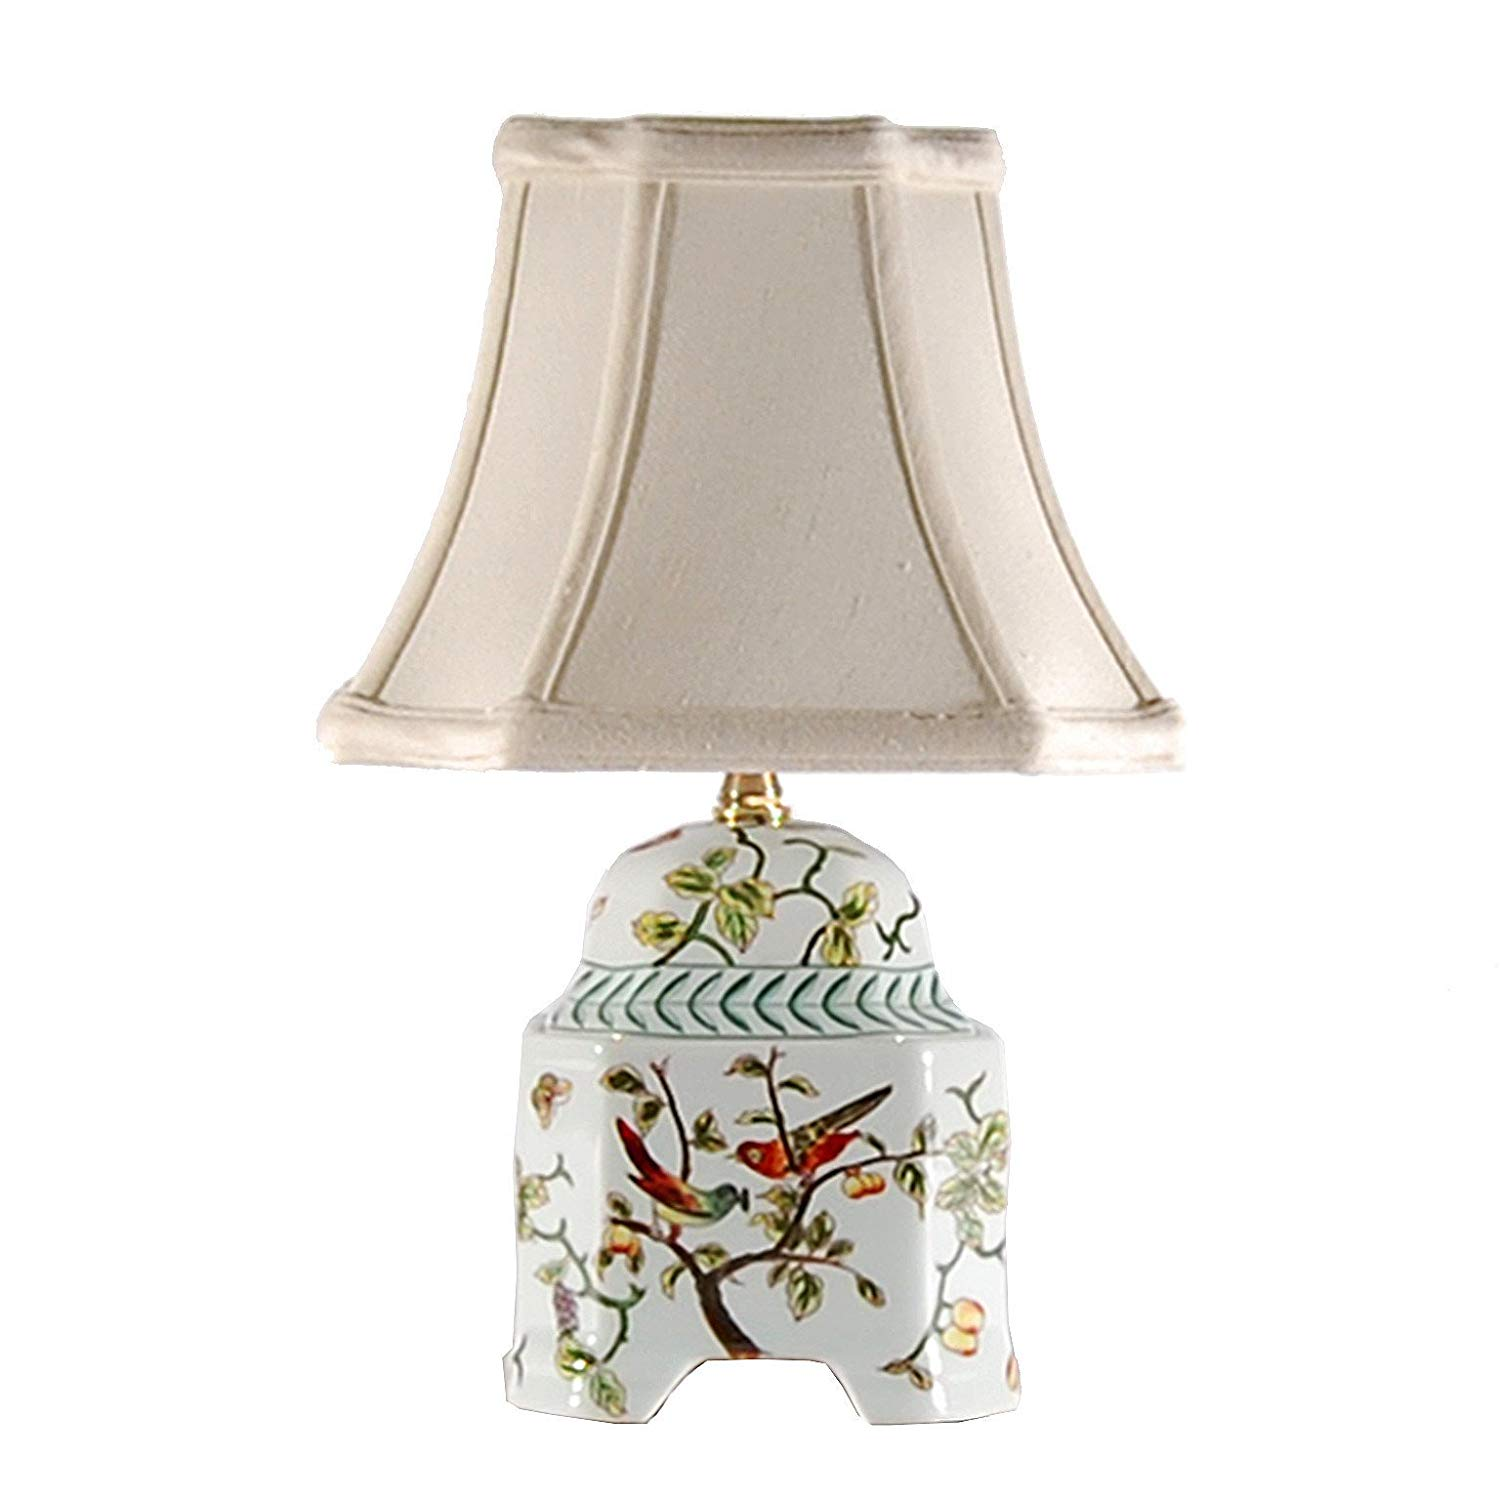 song birds small accent table lamp porcelain base brl brass lamps knurl nesting tables pottery barn legs cool retro furniture end ikea inexpensive quality bedroom nautical hanging